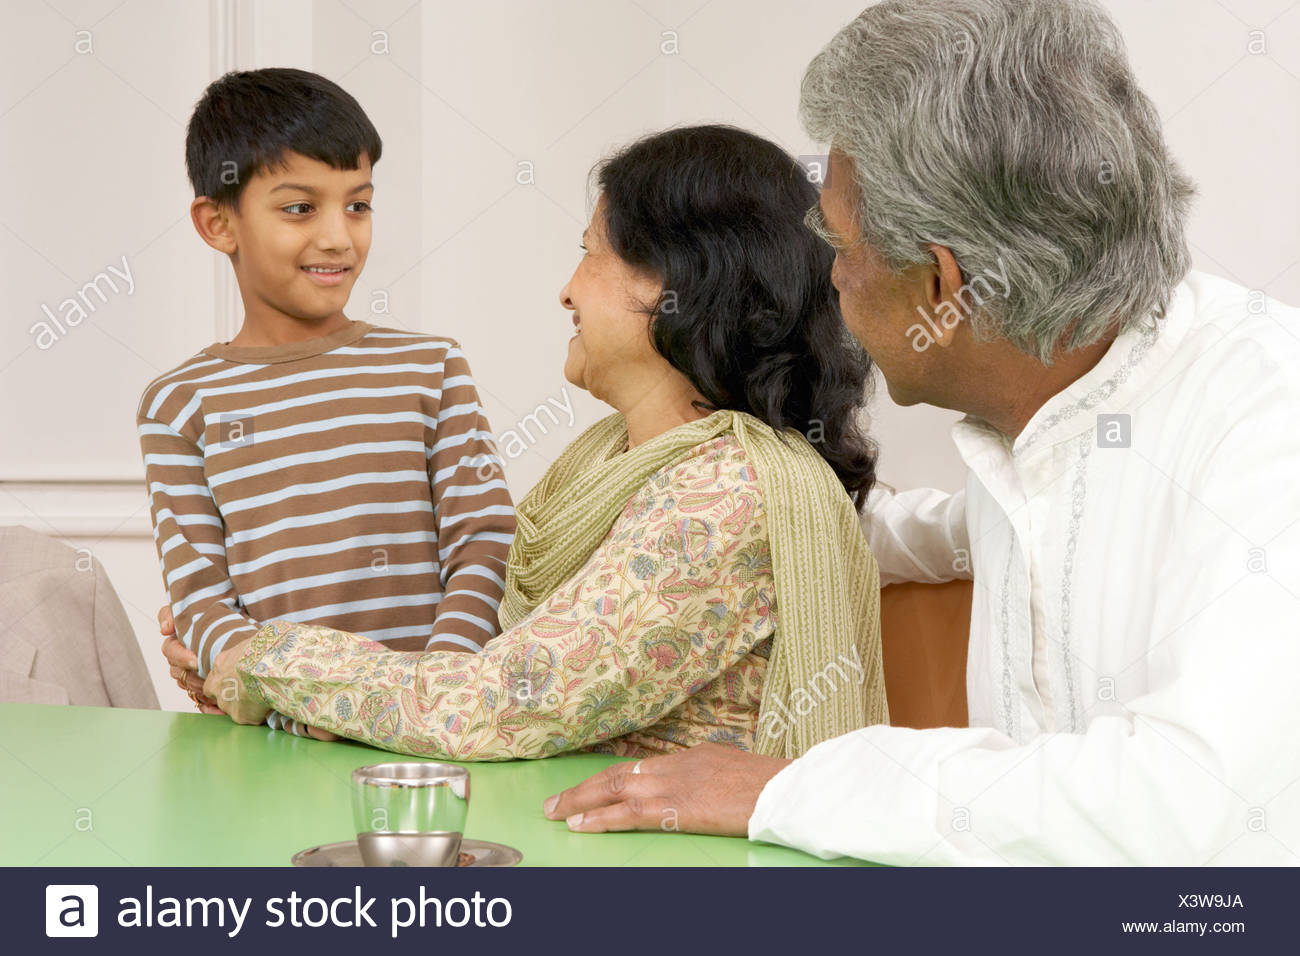 Grandparents with grandson - Stock Image